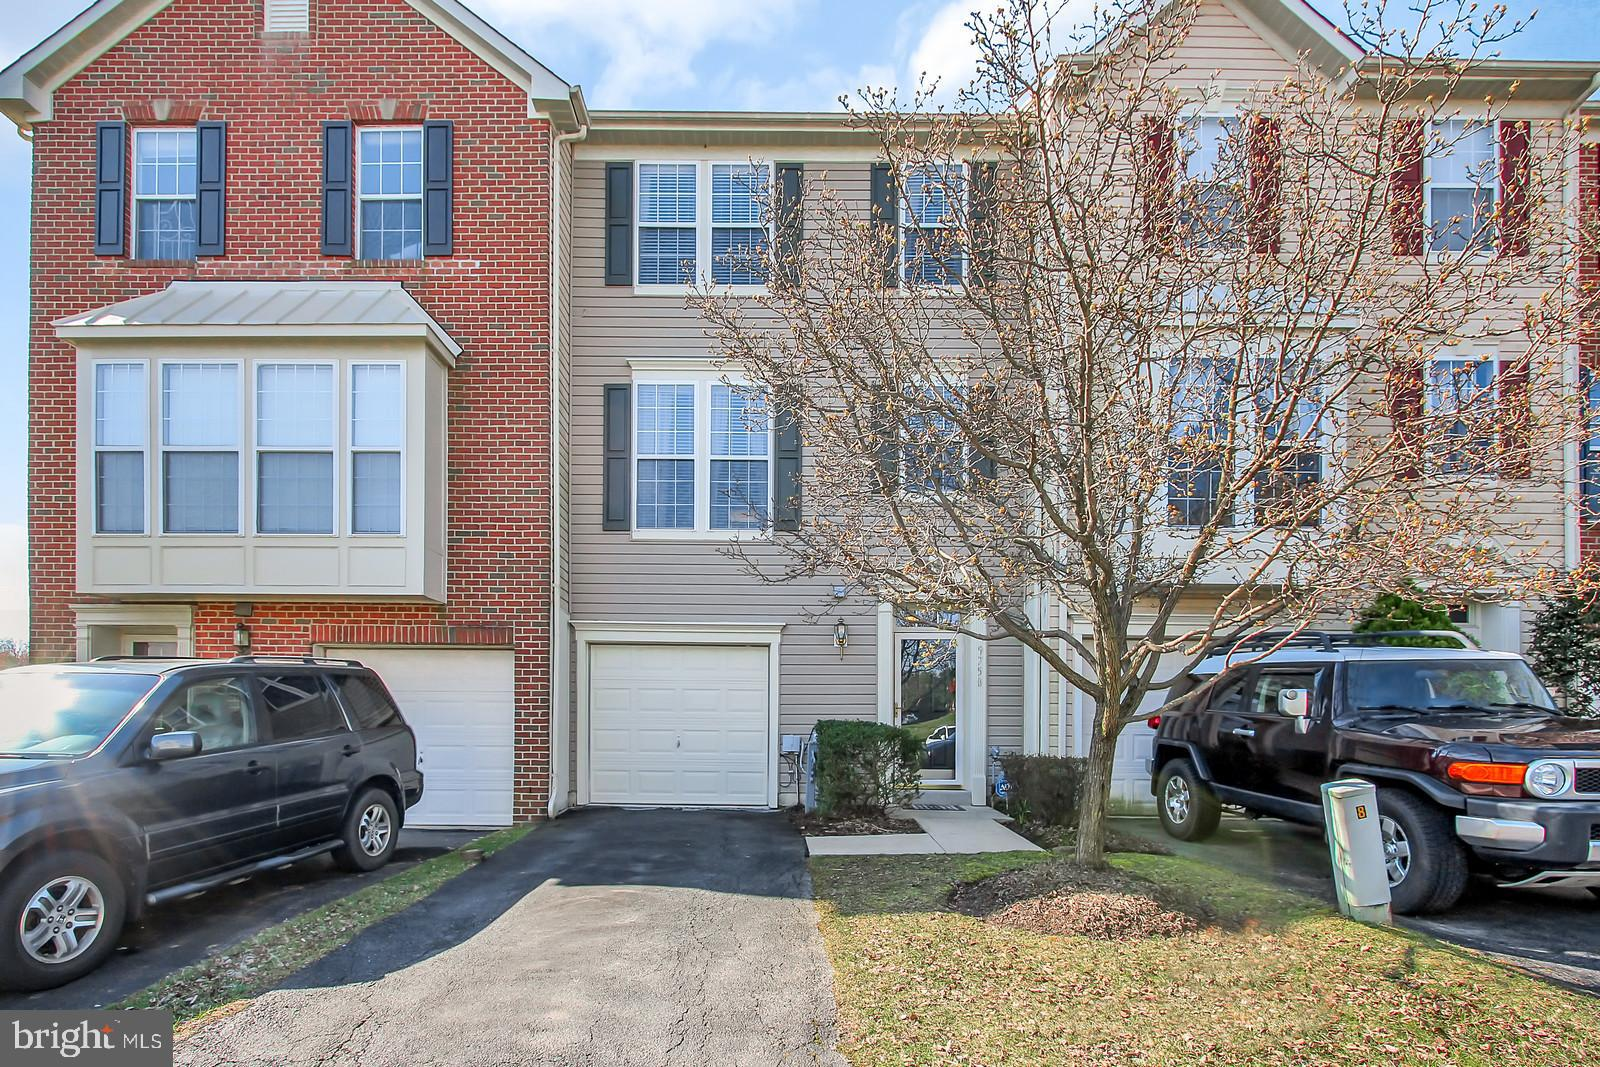 9750 HARVESTER CIRCLE, PERRY HALL, MD 21128